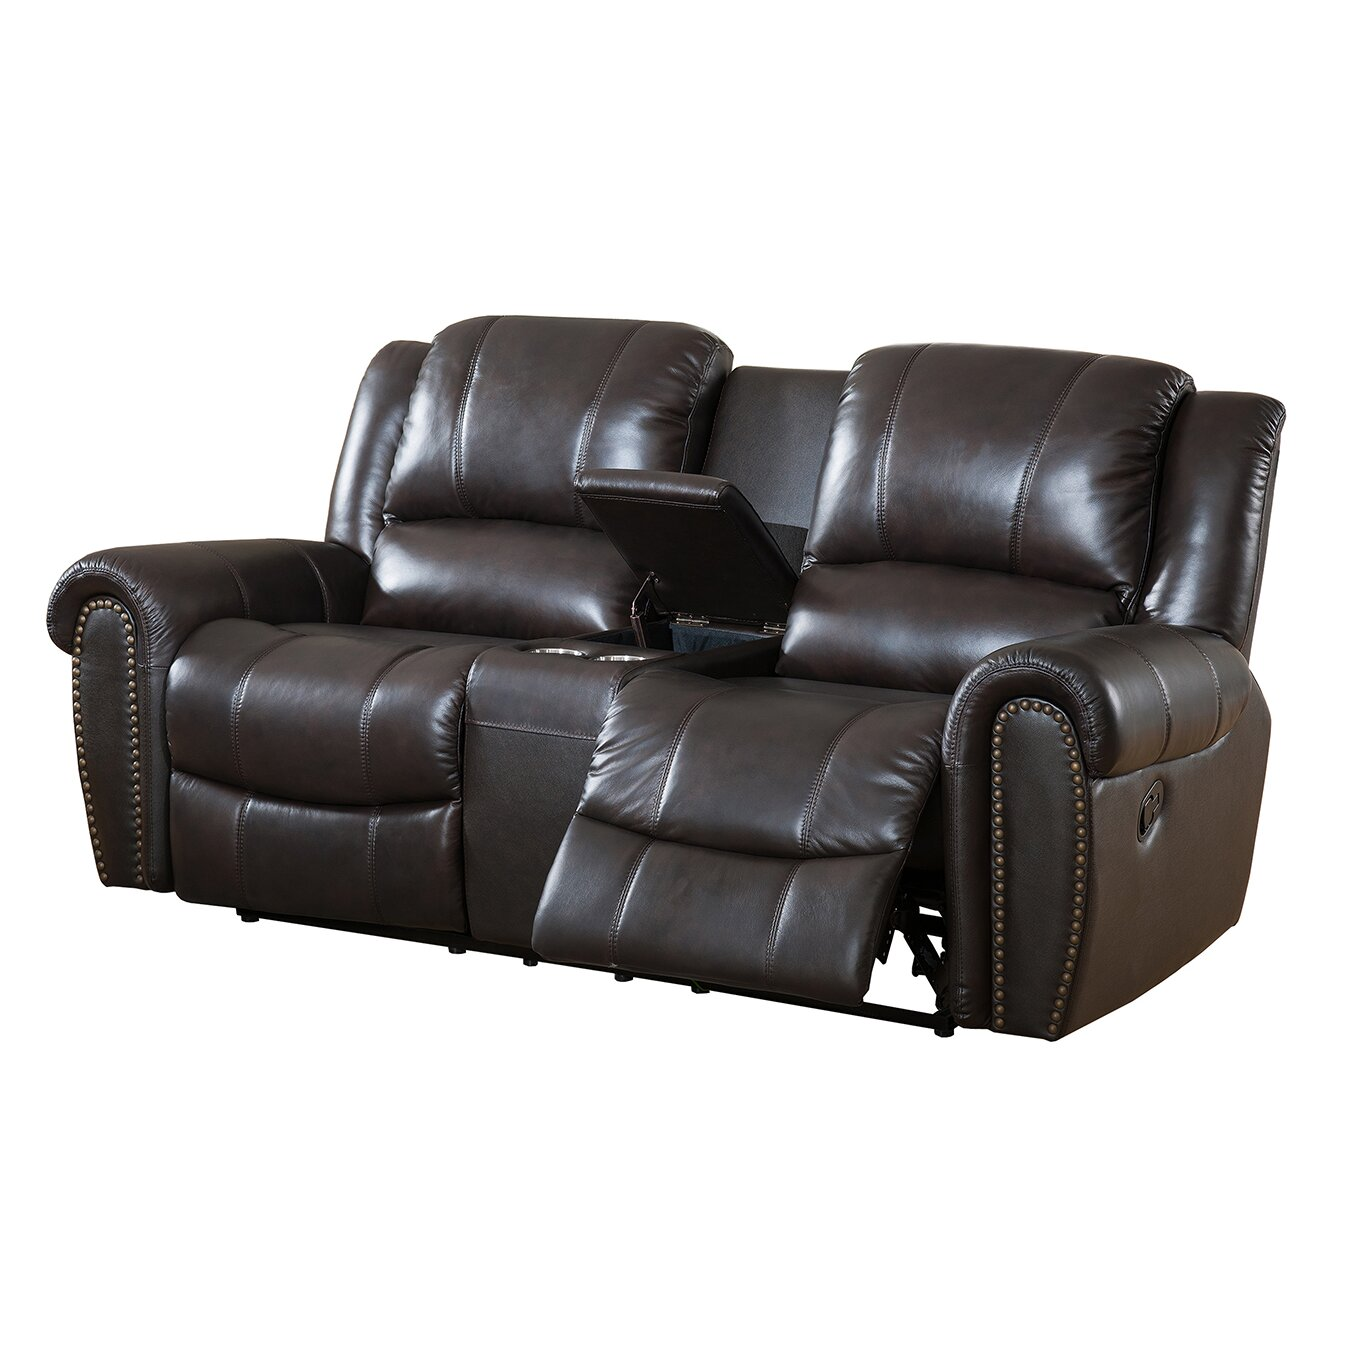 amax charlotte leather recliner sofa and loveseat set reviews